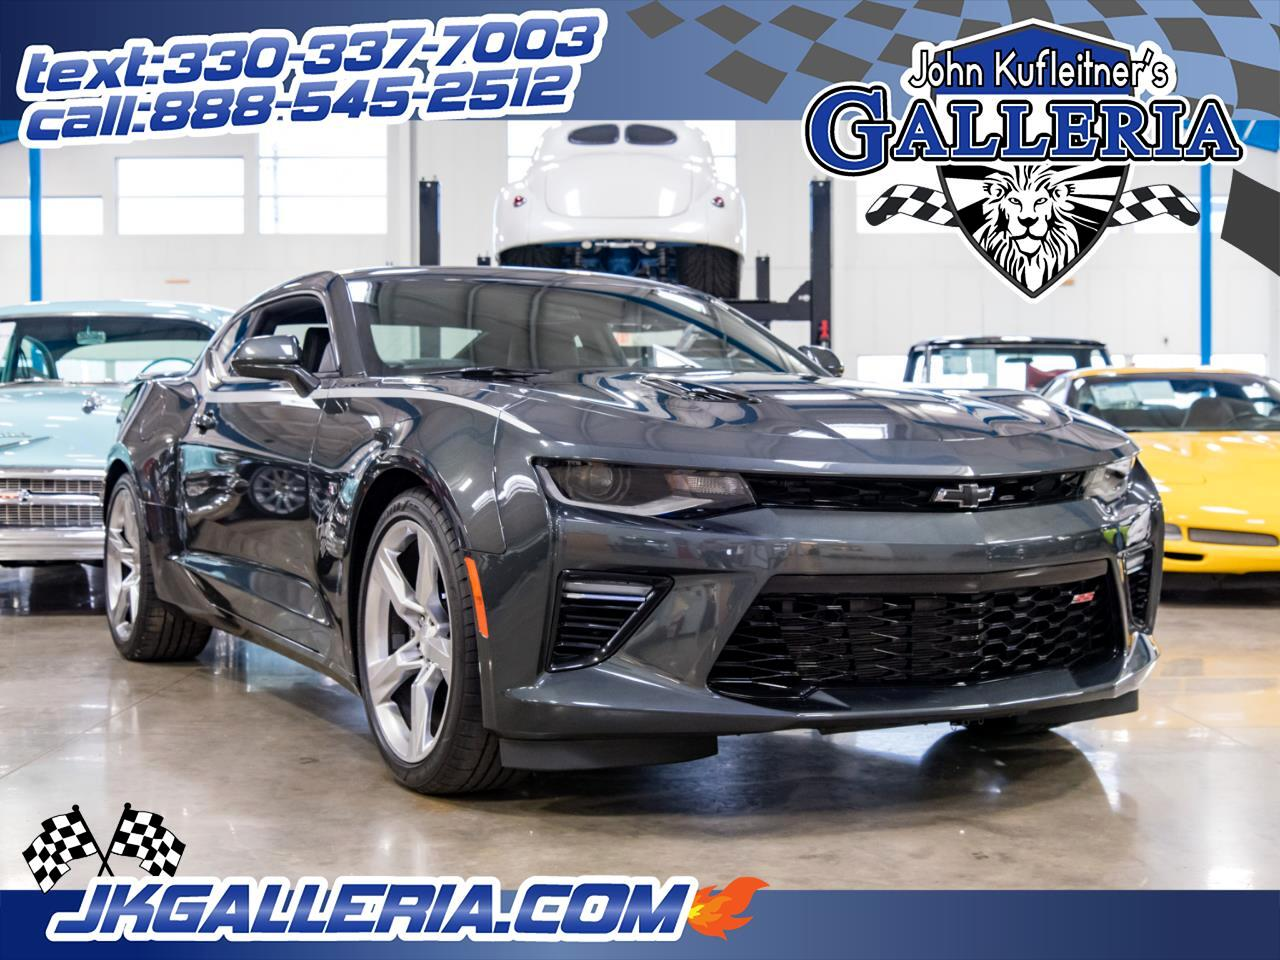 2017 Chevrolet Camaro 2dr Cpe SS w/2SS Hutter Performance upgrades